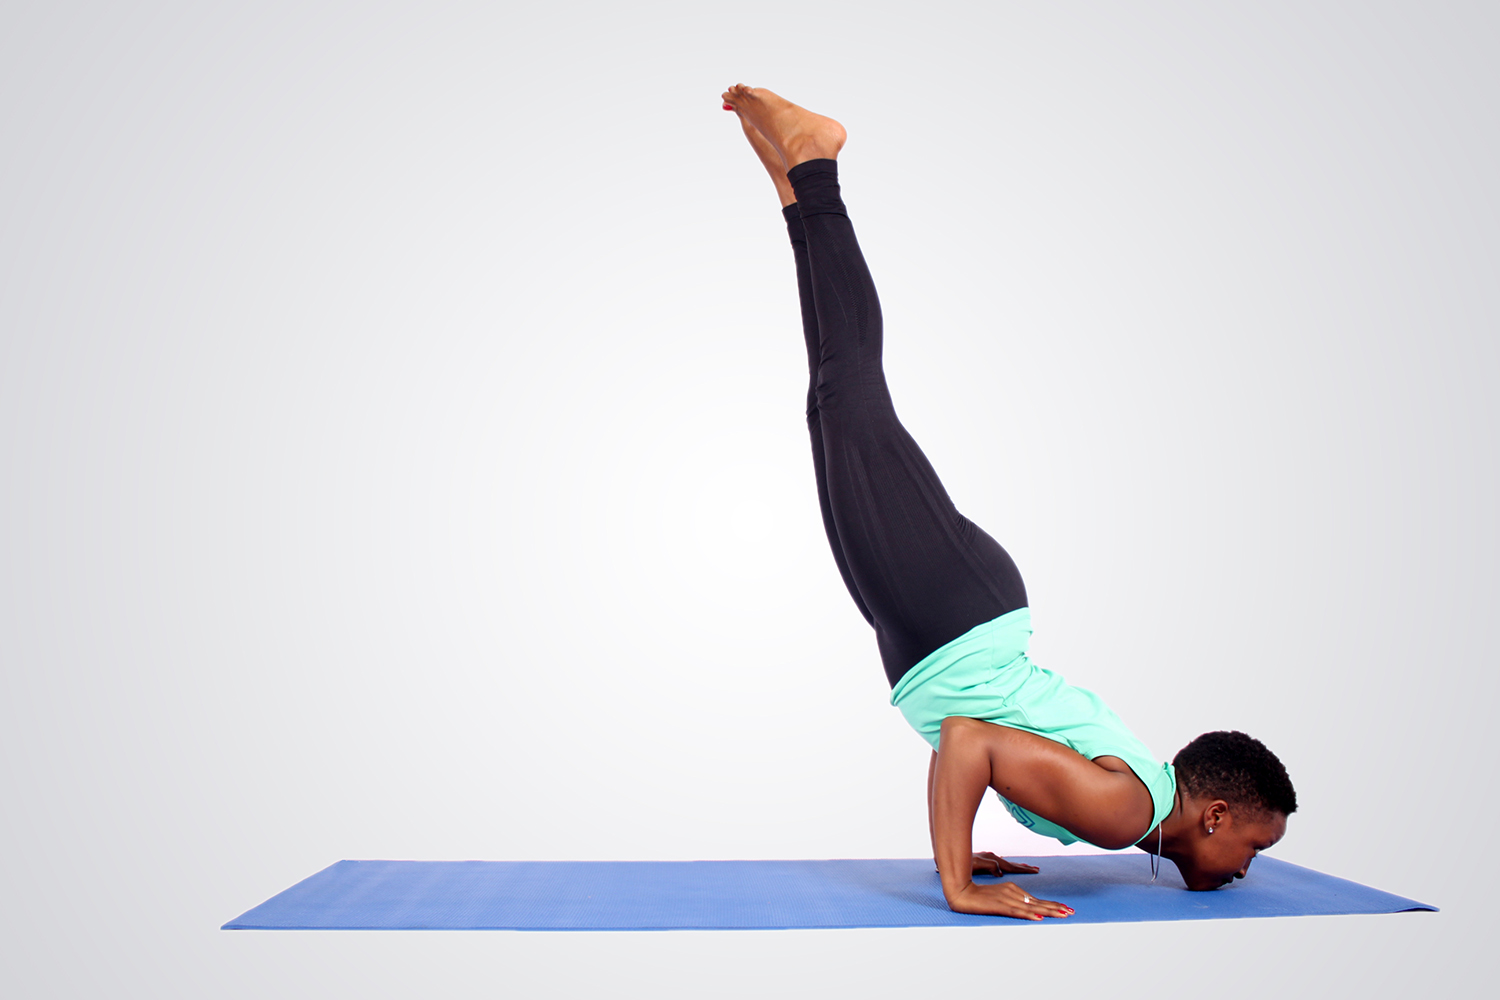 Strong Athletic Woman Doing Chin Stand Yoga Pose - High Quality